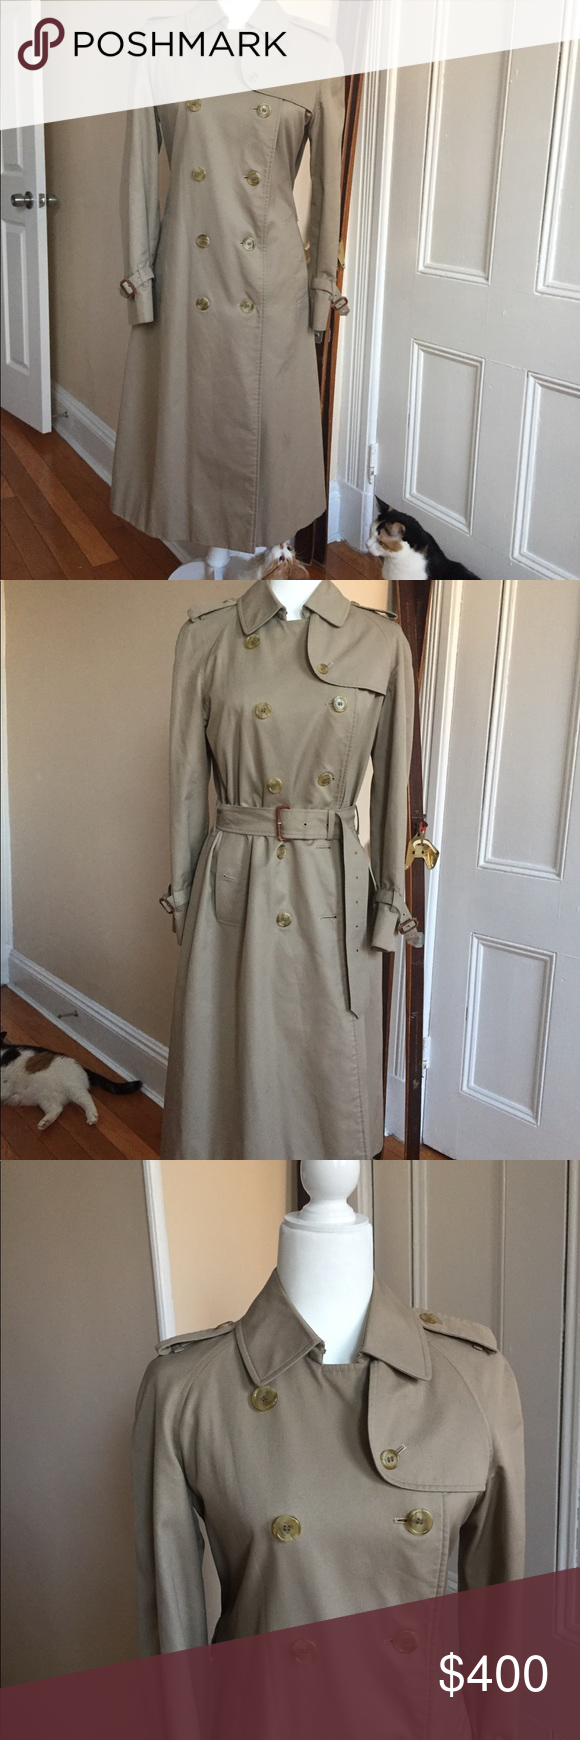 Last Chance Vintage Burberry Long Trench Size 8 Long Trench Burberry Trench Coat Burberry